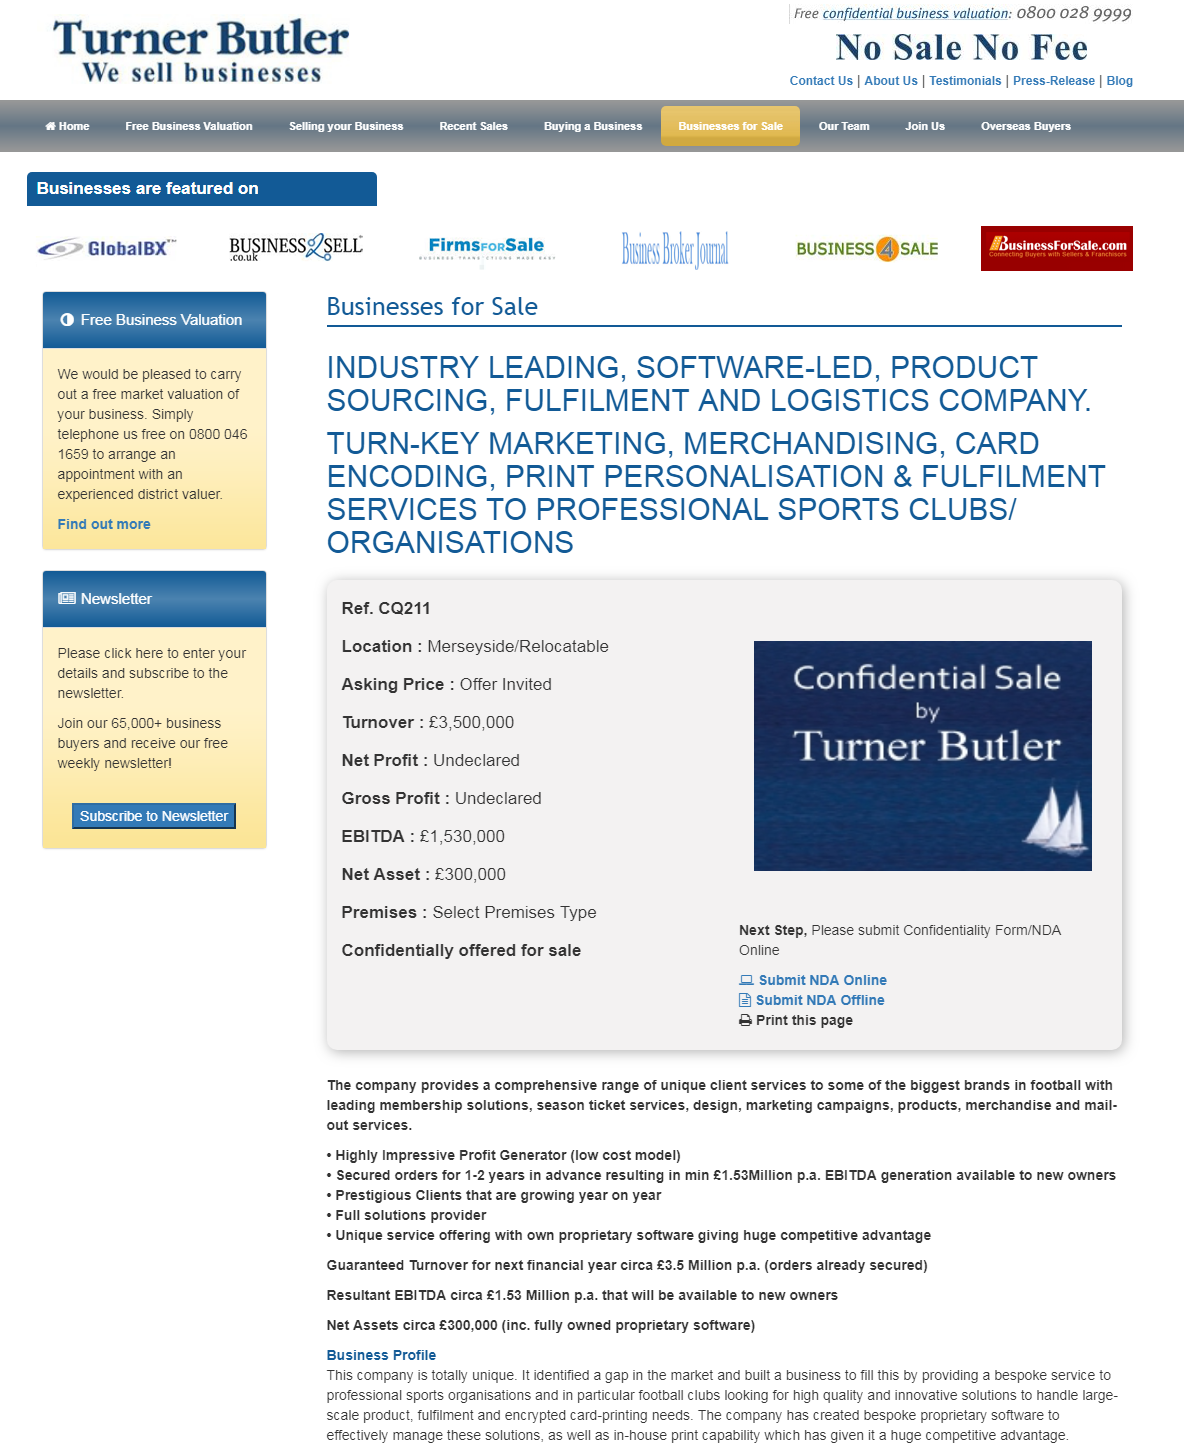 Business for sale INDUSTRY LEADING, SOFTWARE-LED, PRODUCT SOURCING